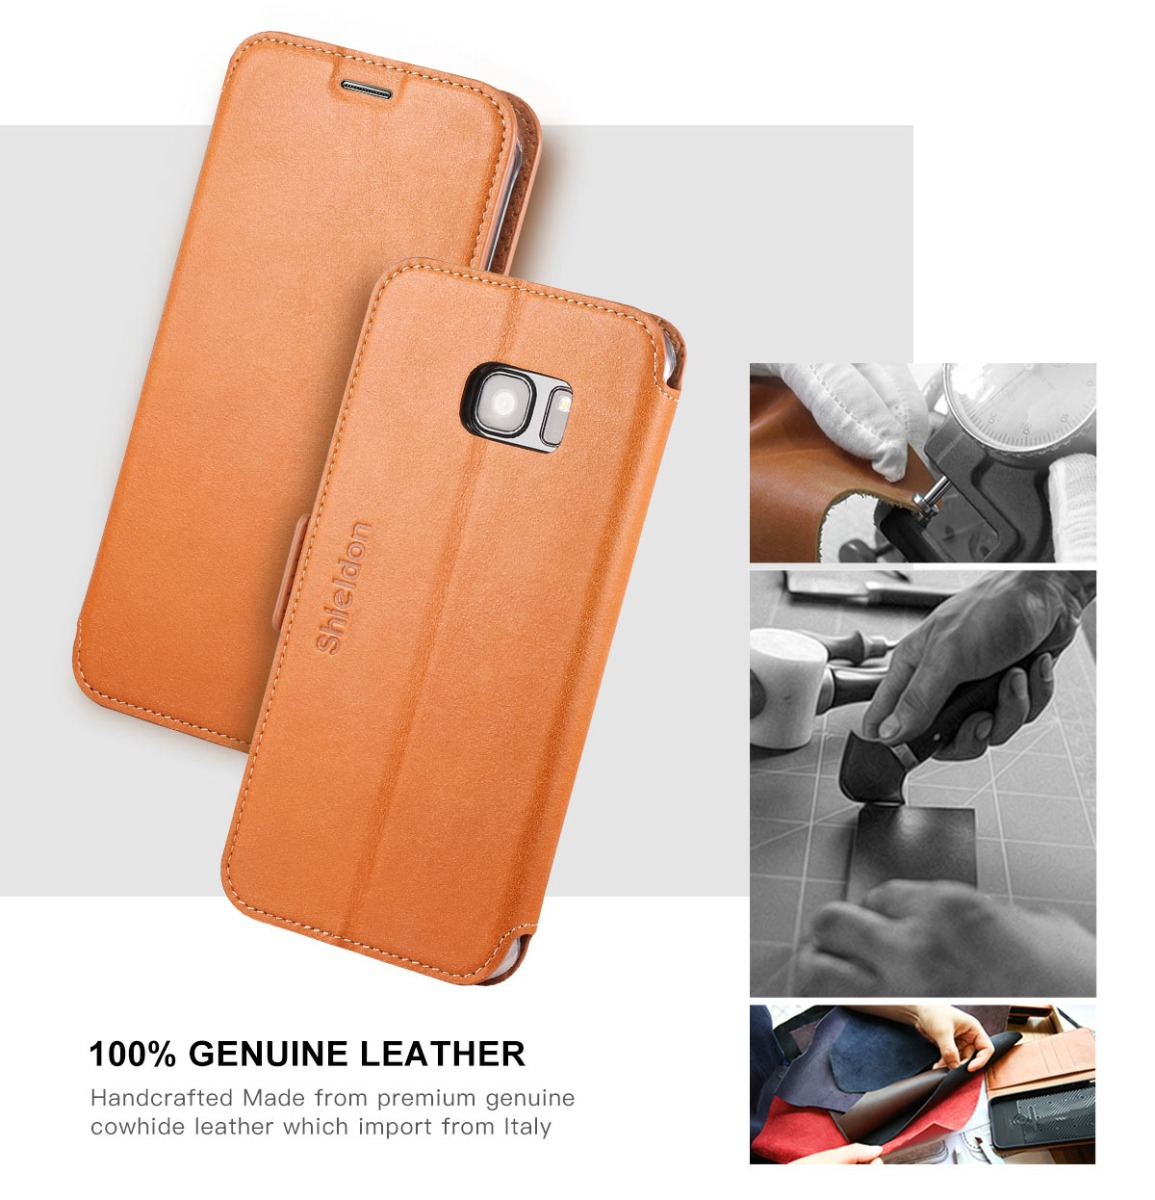 SHIELDON Galaxy S7 Edge Genuine Leather Kickstand Case